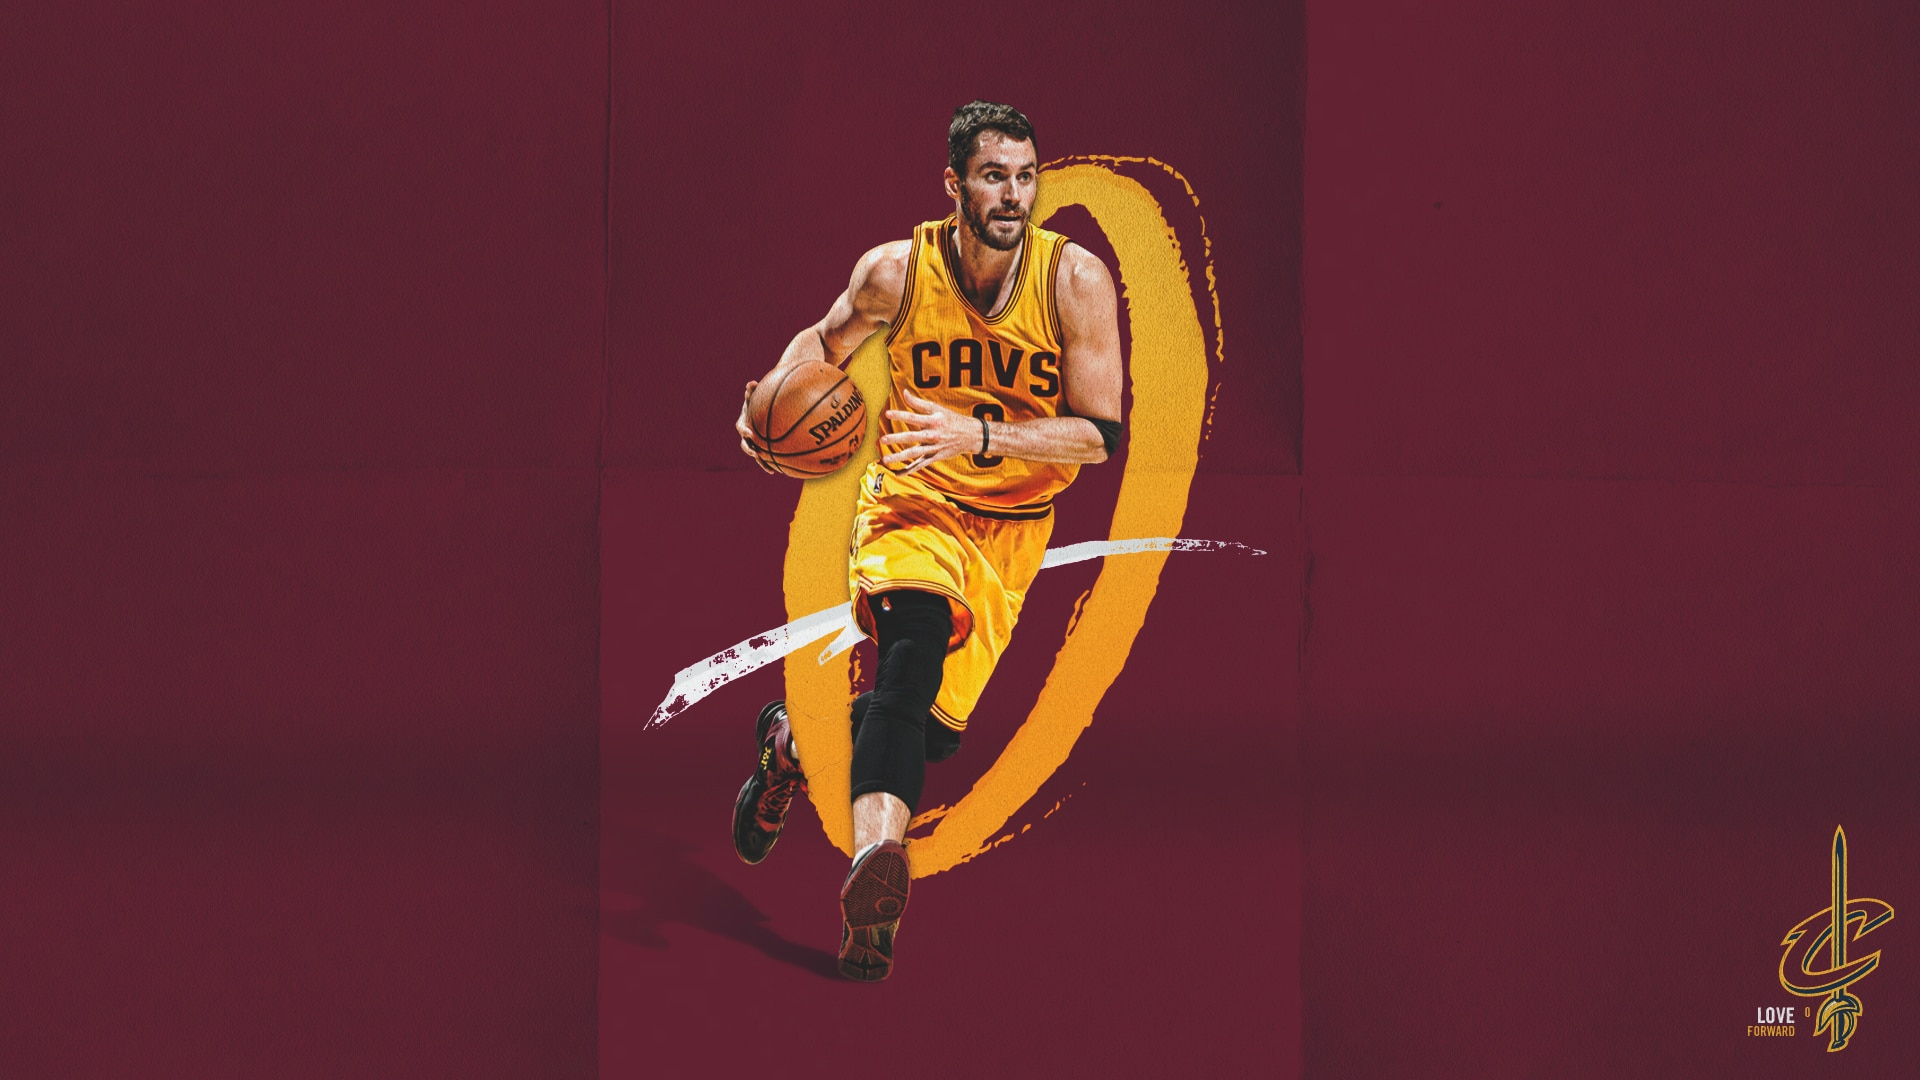 cleveland cavaliers wallpapers